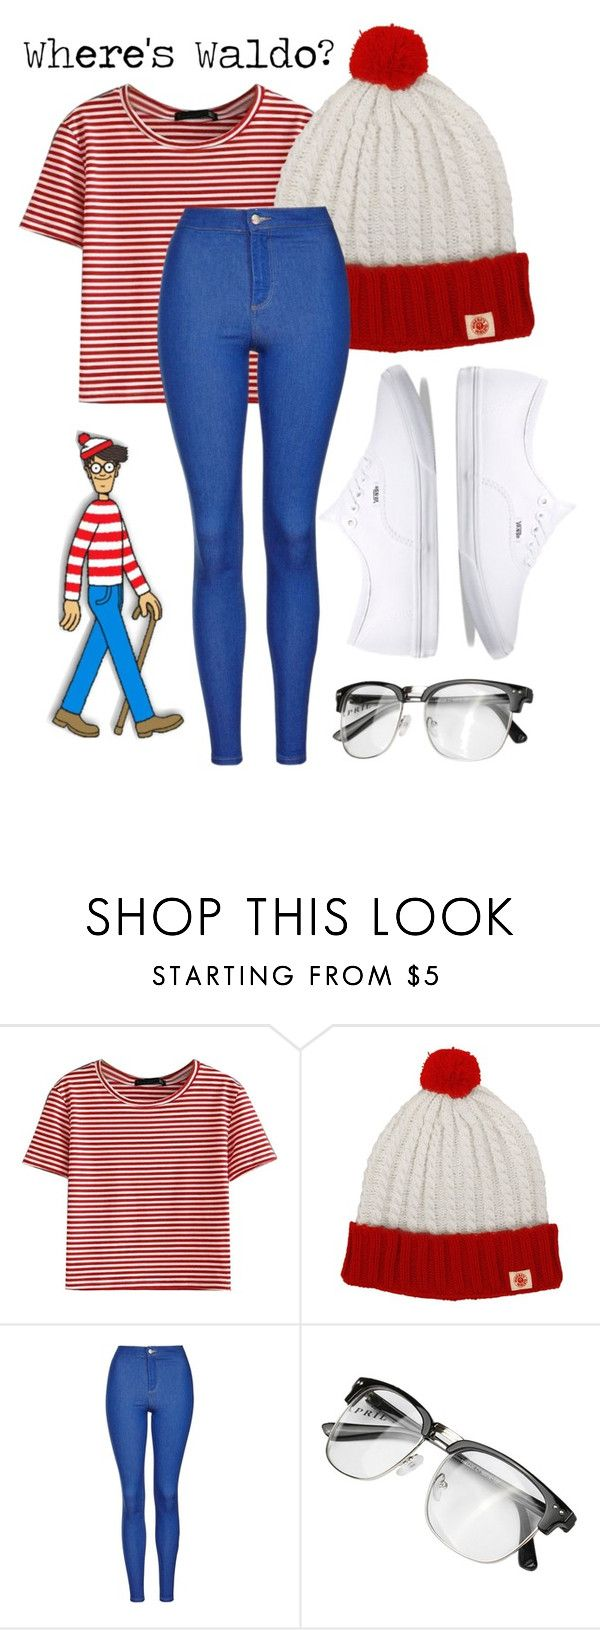 """Where's Waldo Halloween Costume"" by mejfun on Polyvore featuring WithChic, Topshop and Vans"